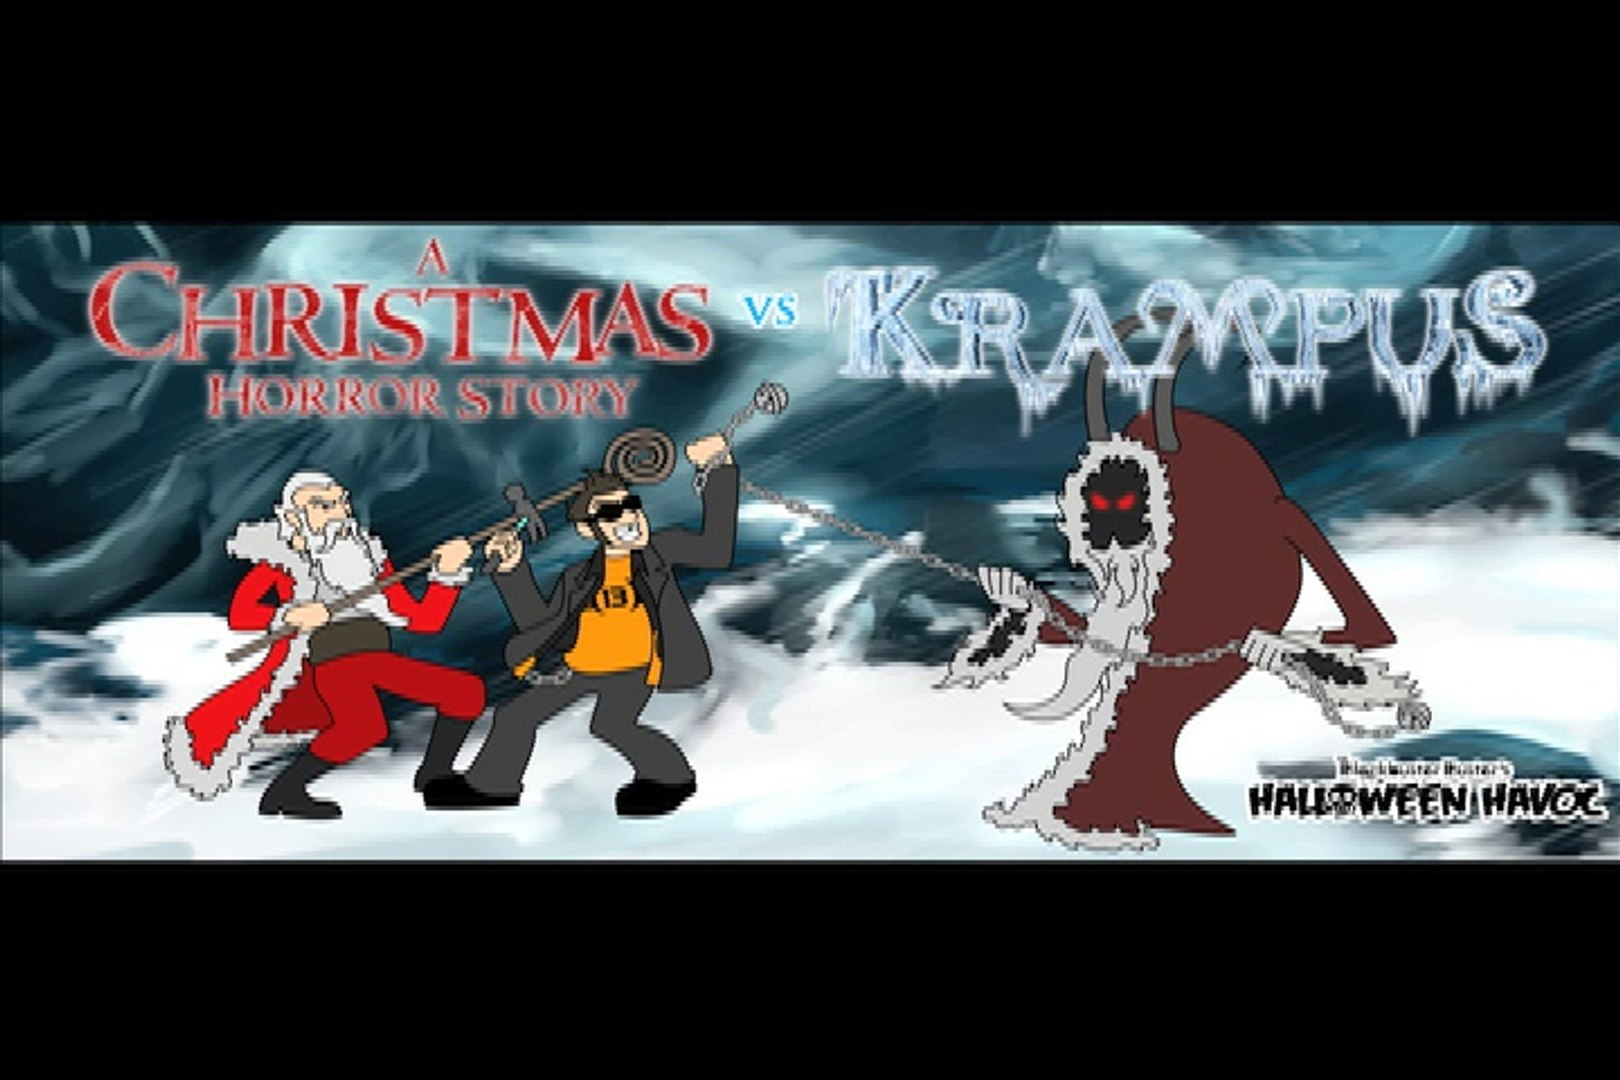 Christmas Horror Story.A Christmas Horror Story Vs Krampus By The Blockbuster Buster